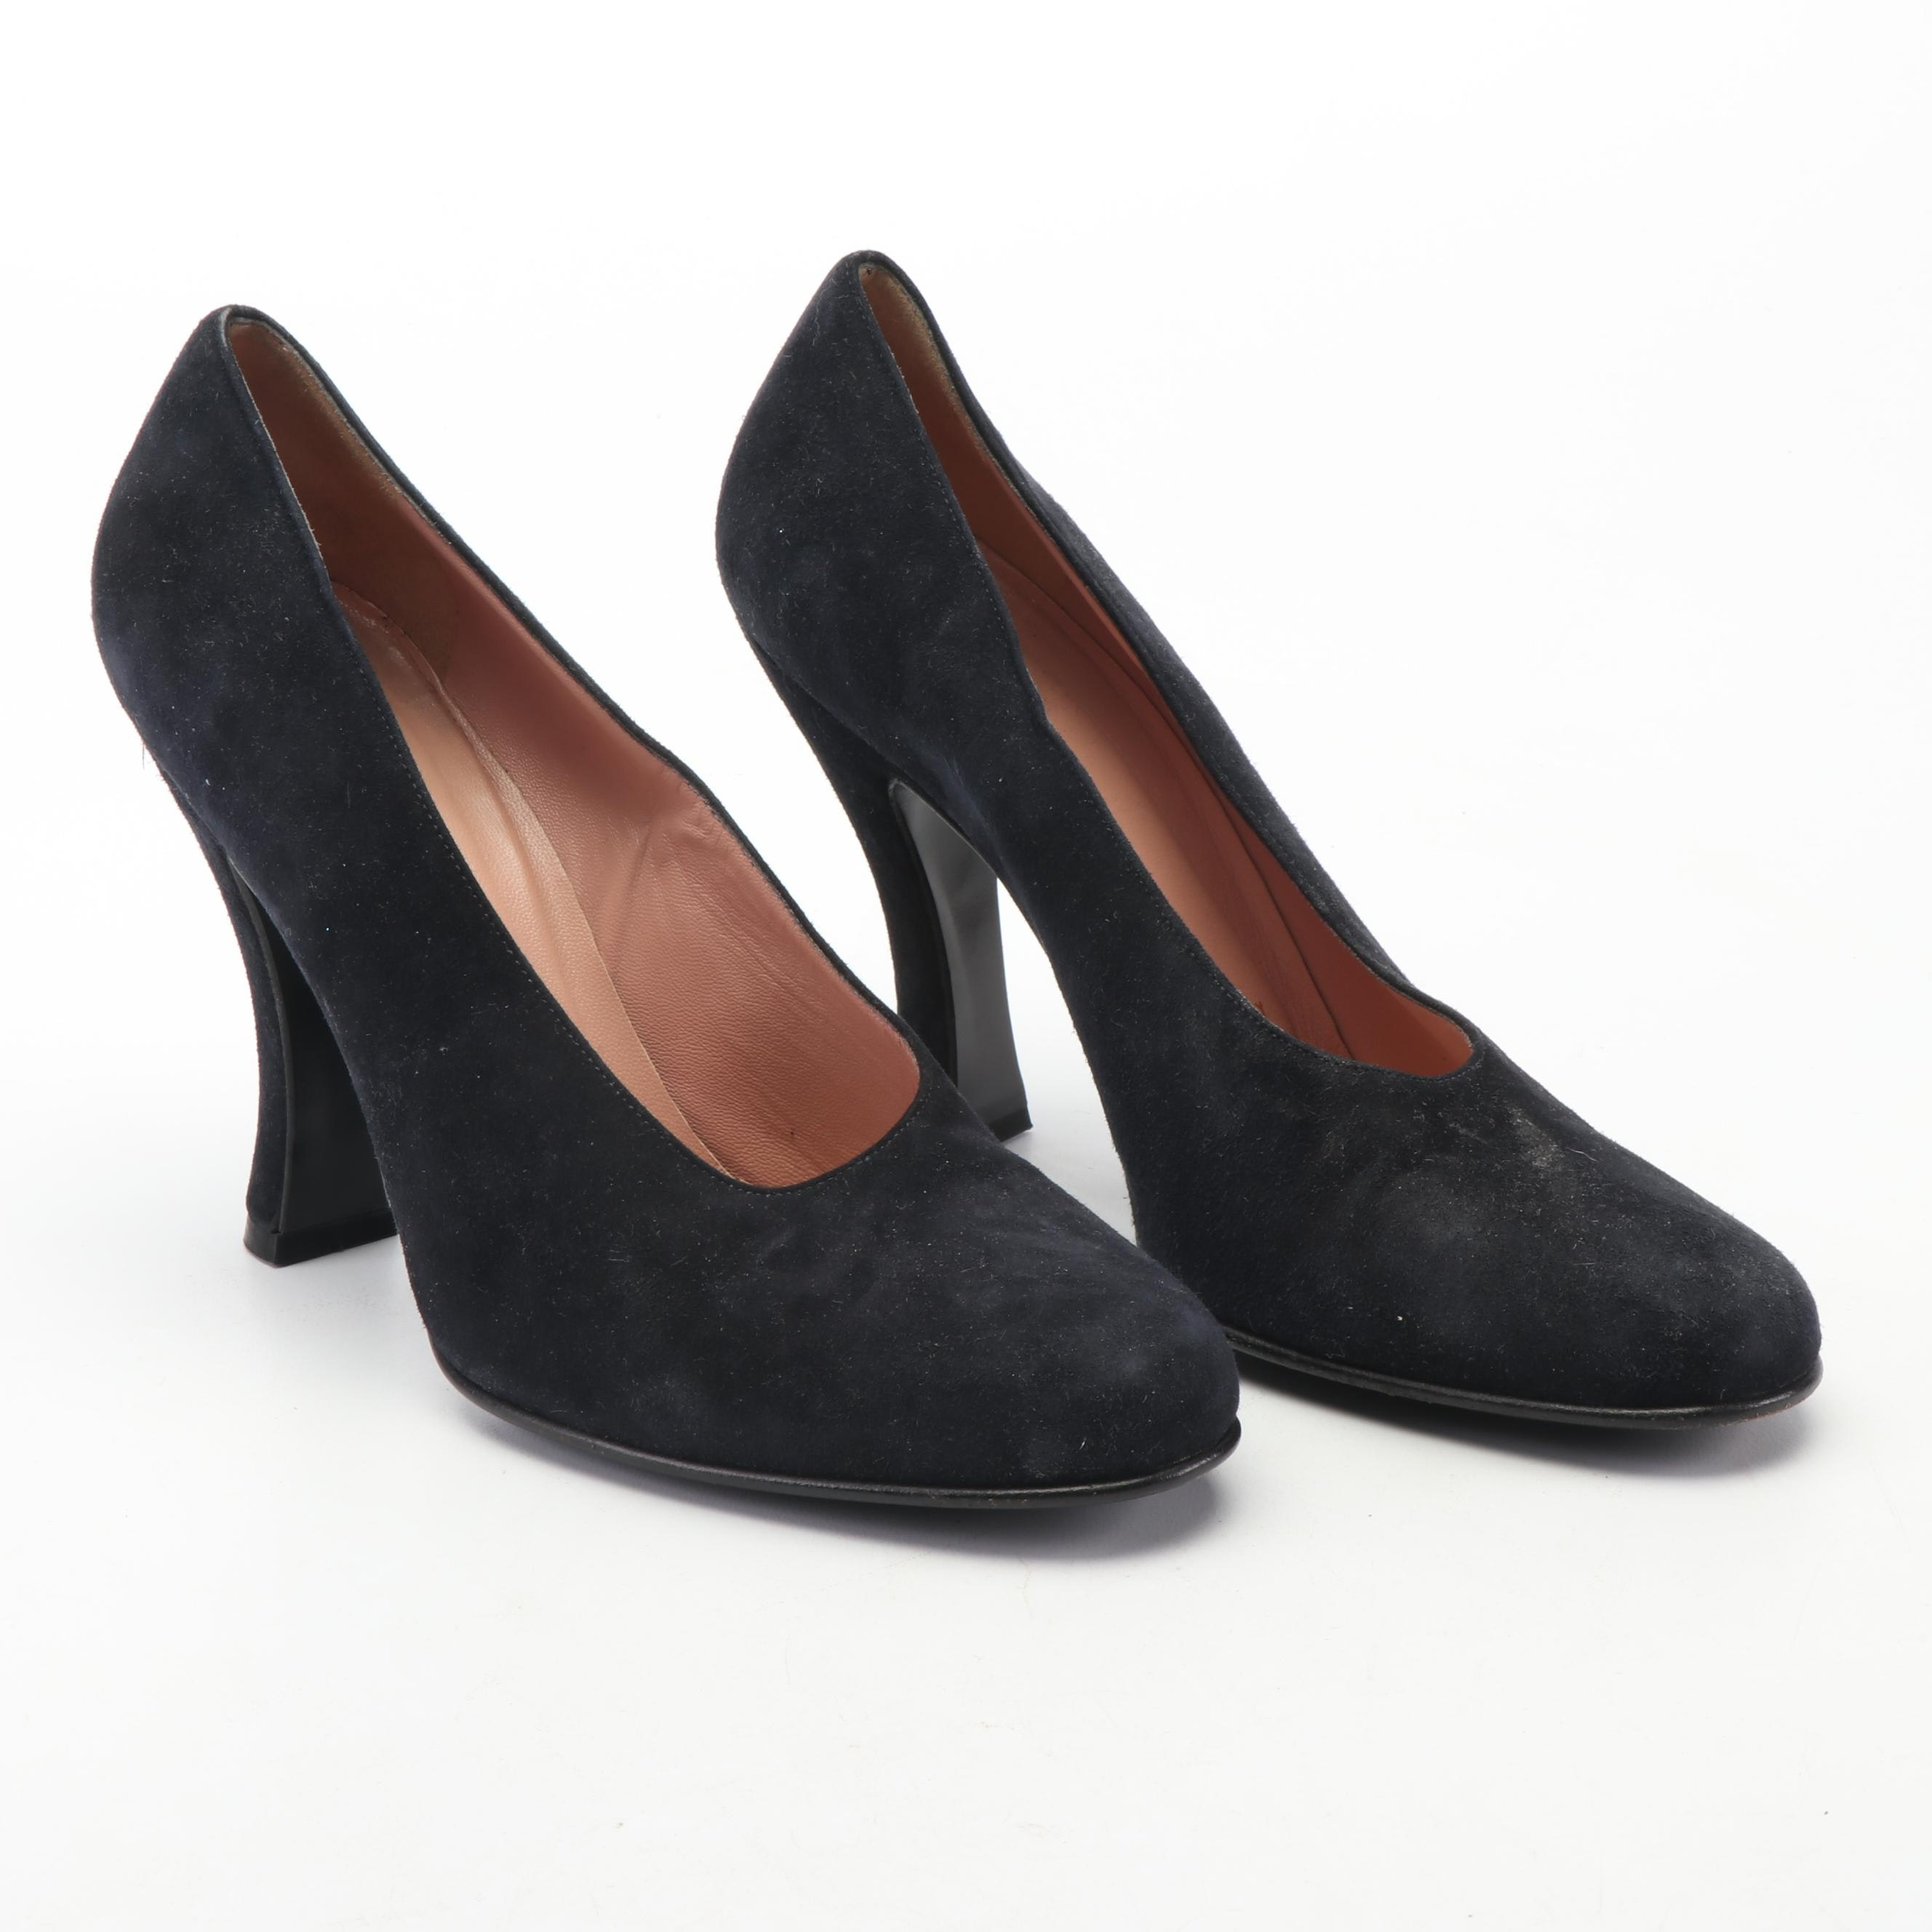 Prada Black Suede Pumps, Made in Italy